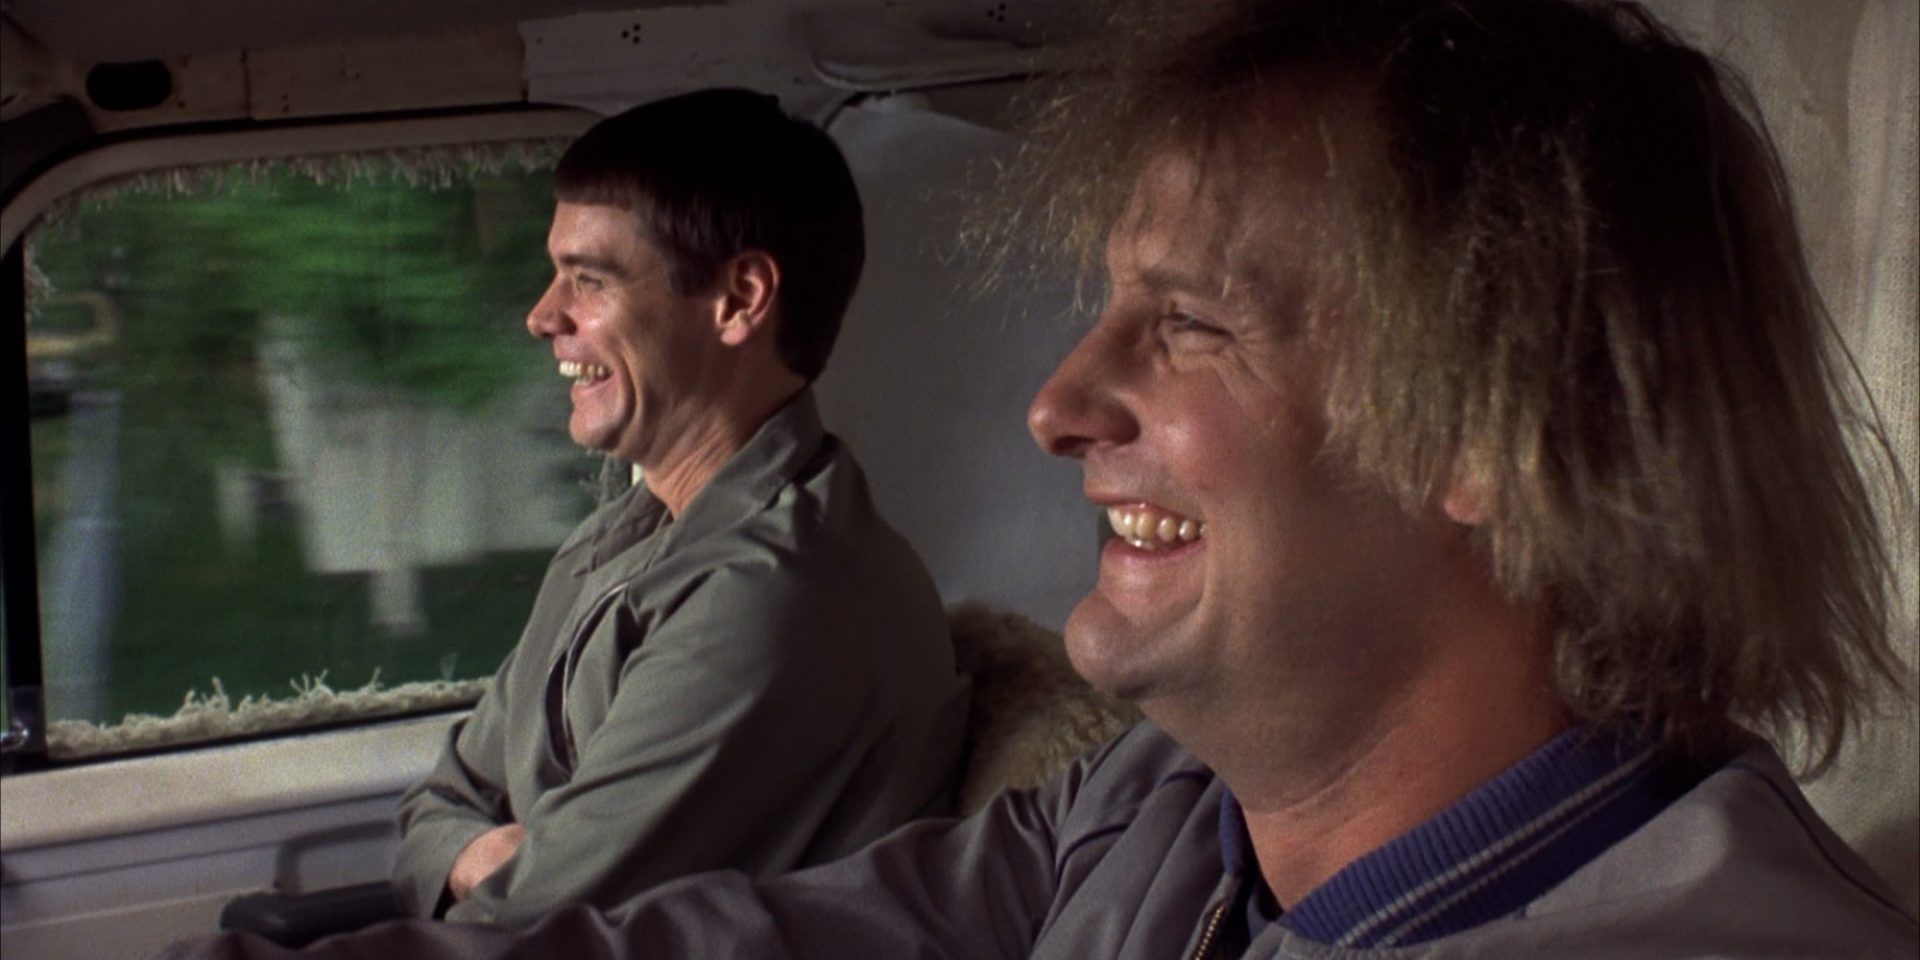 A scene from the movie Dumb and Dumber.